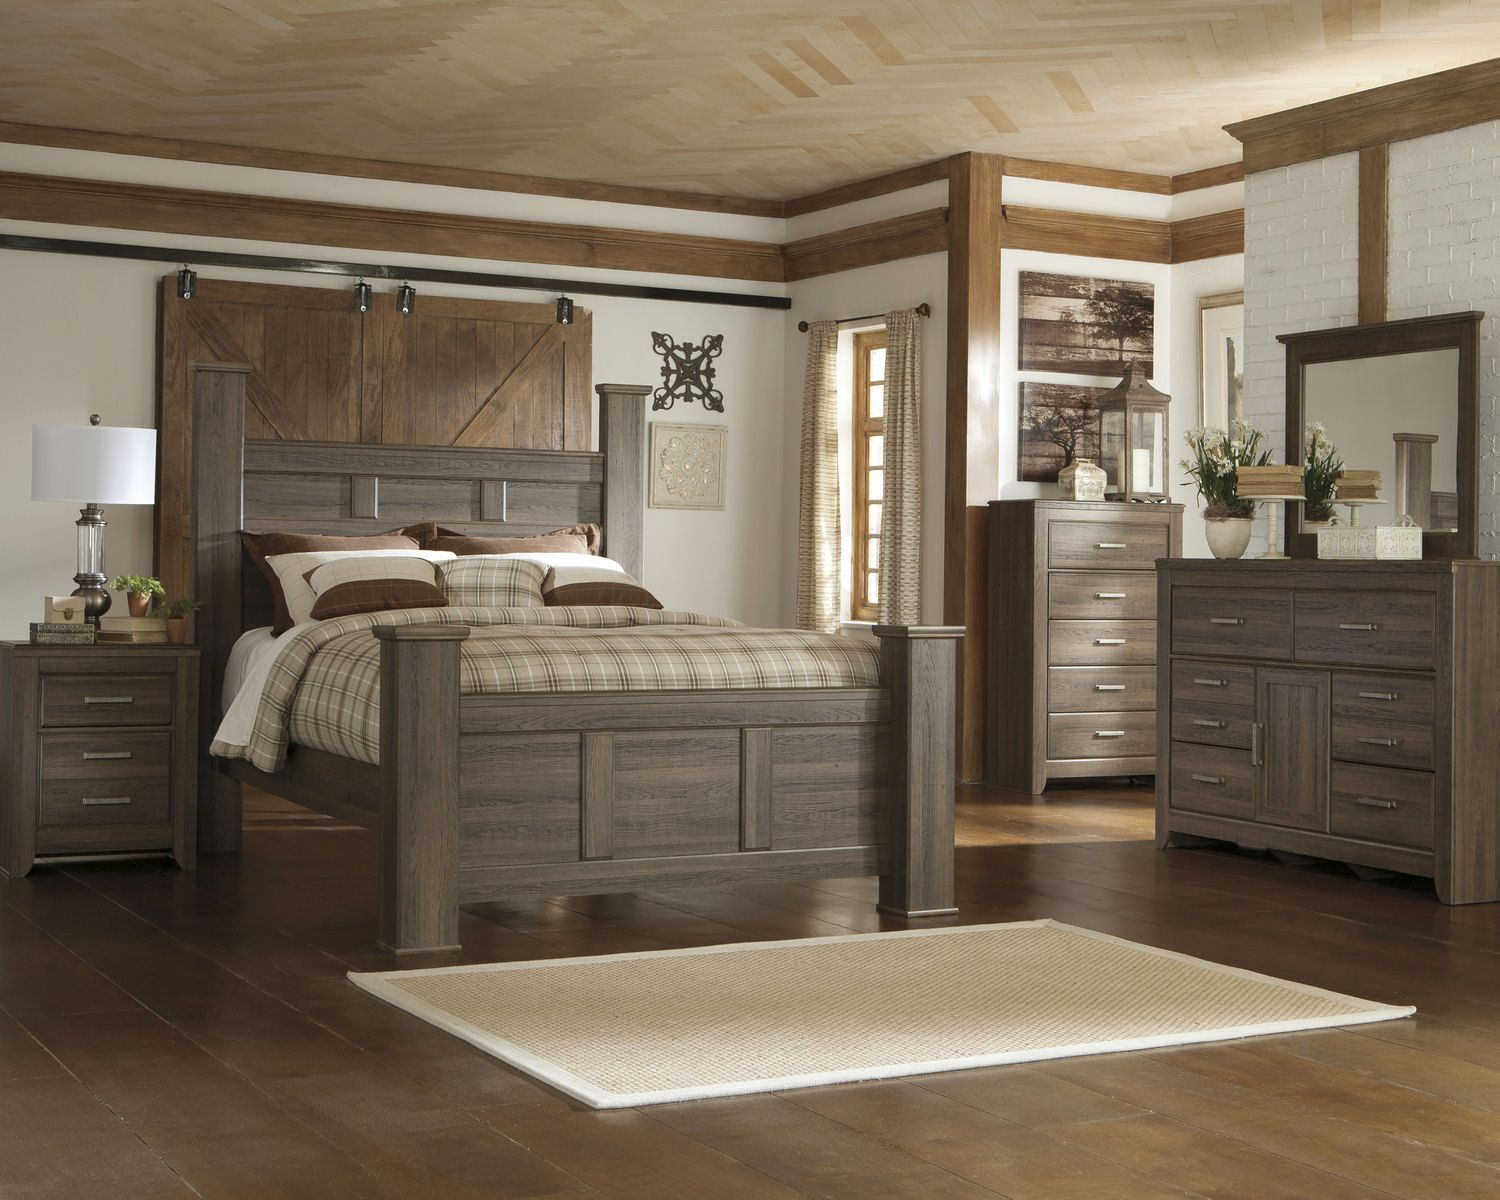 Master bedroom with 4 poster bed  Santa Cruz Queen Poster Bedroom Suite  HOM Furniture  Remodeling